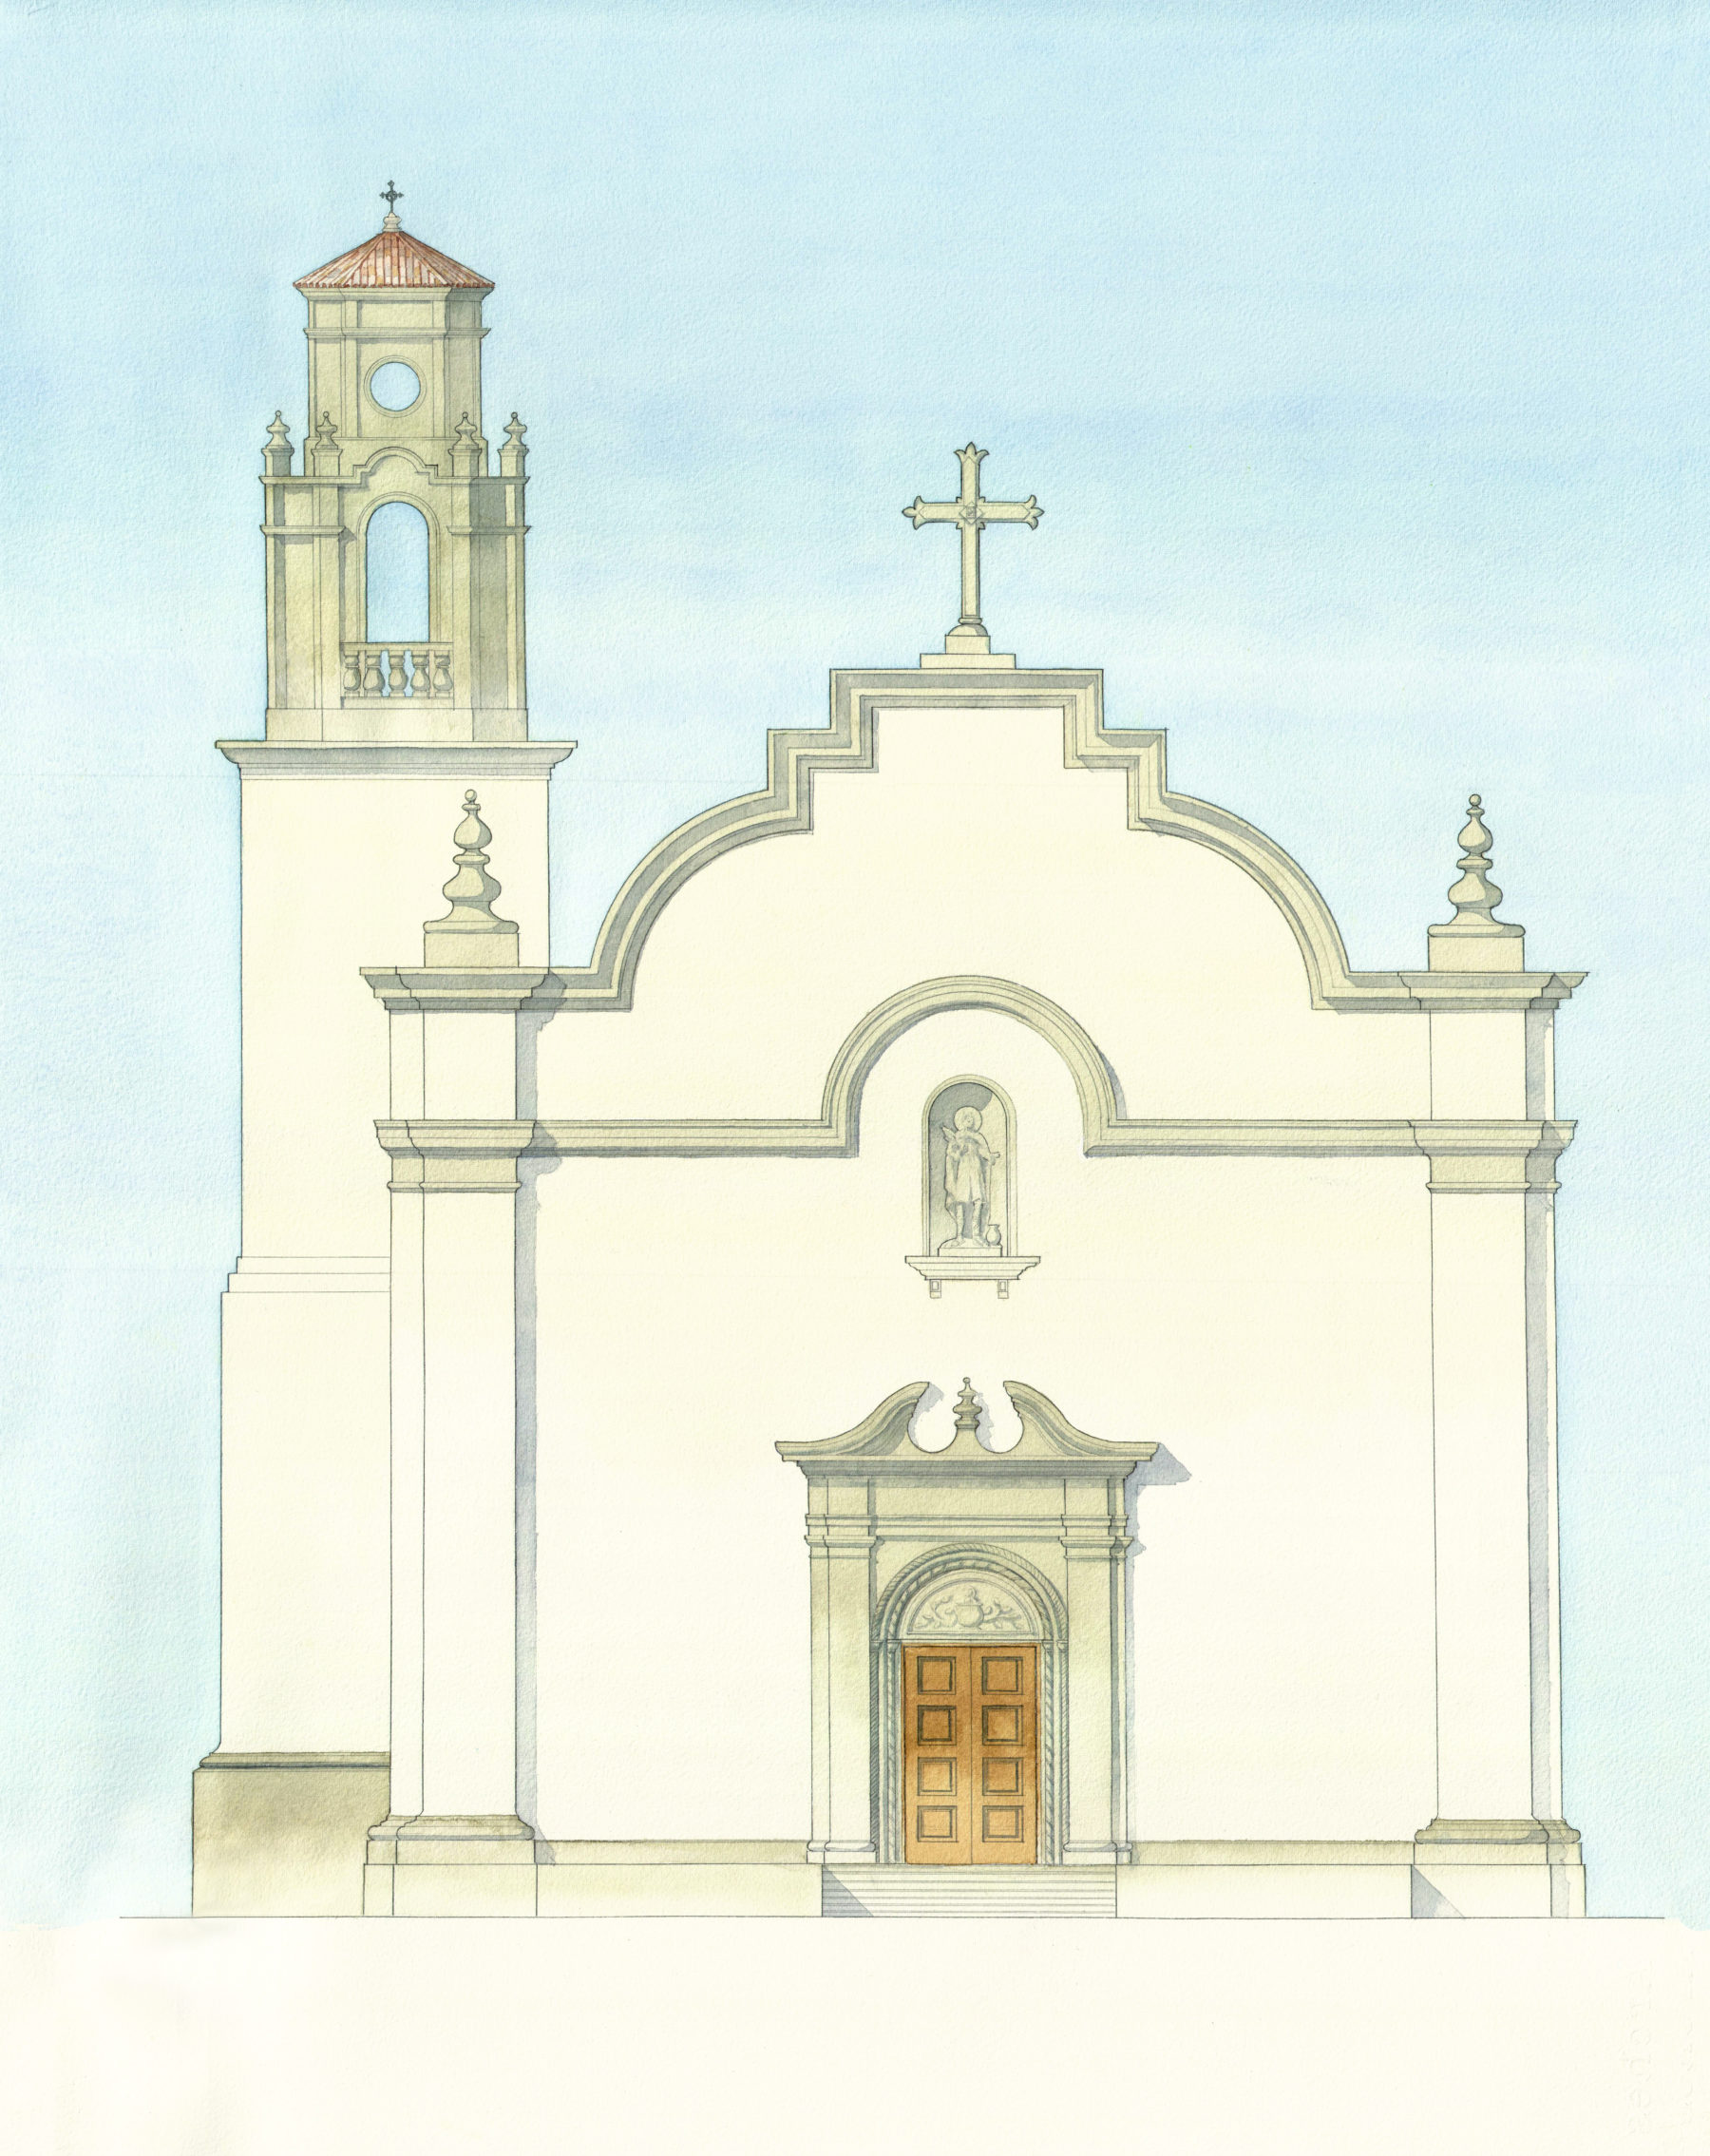 Adobe mission church with statue niche limestone details classical façade bell tower mission by Harrison Design